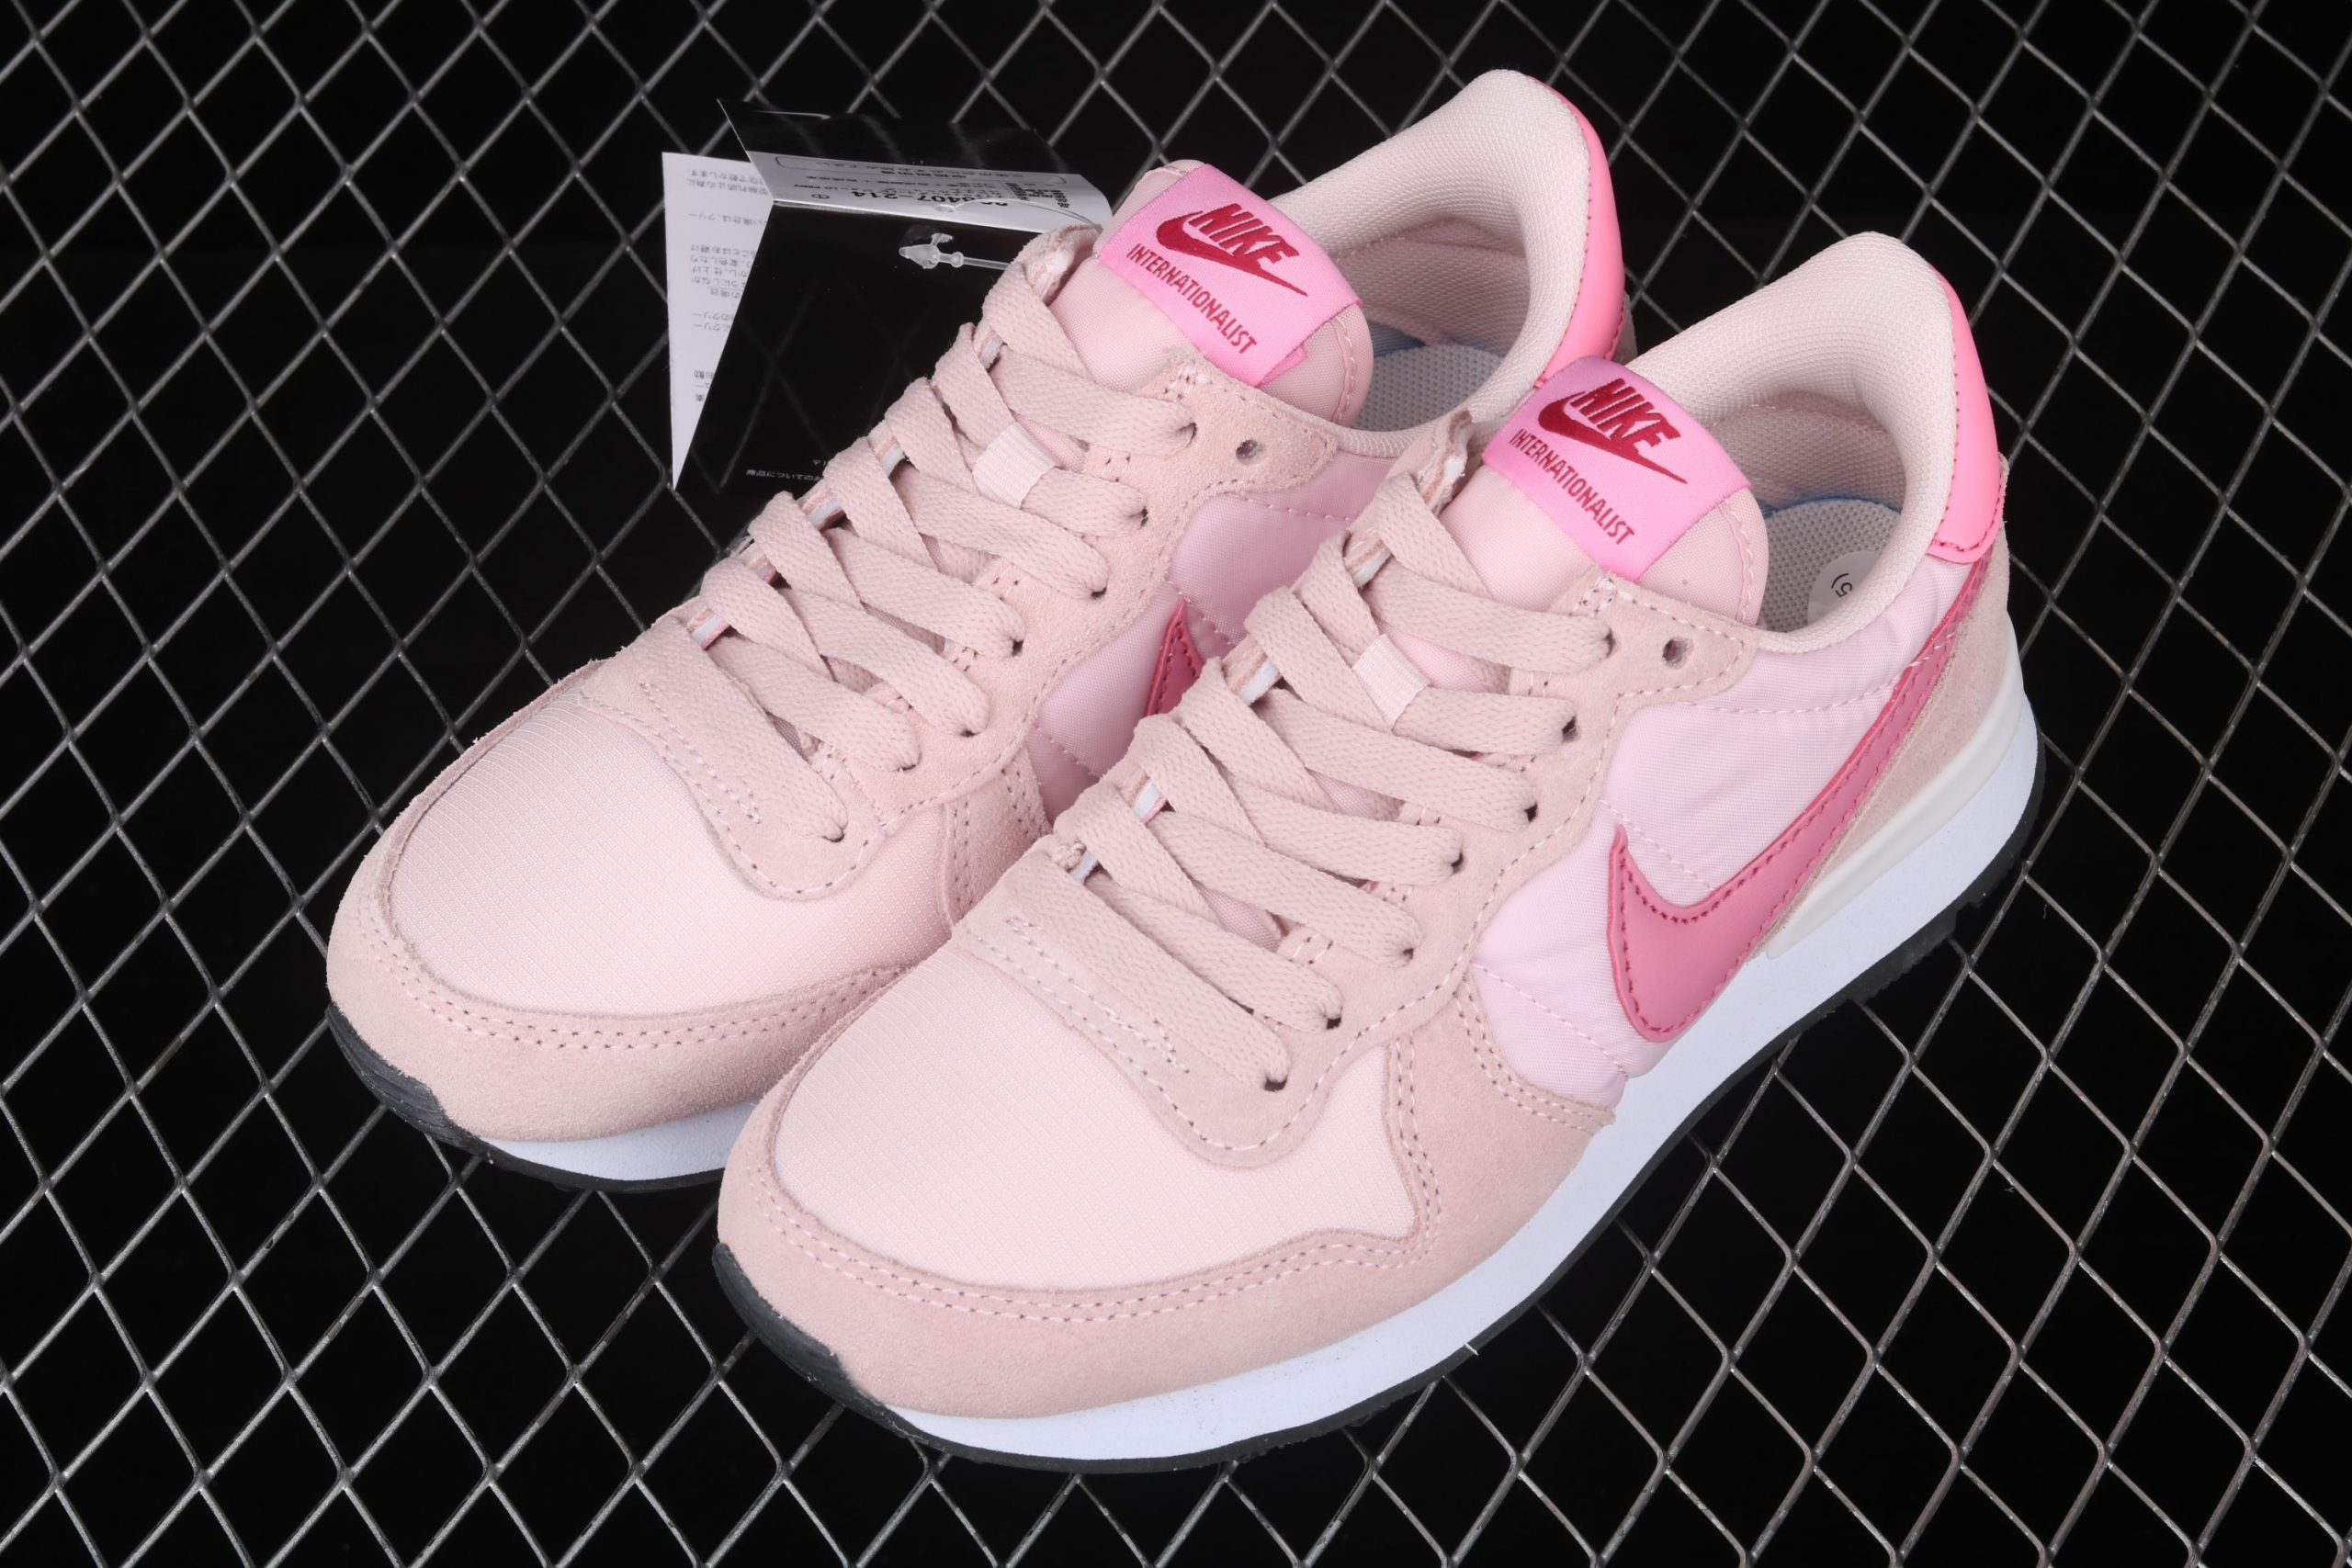 Nike Internationalist leather light pink-pink shoes